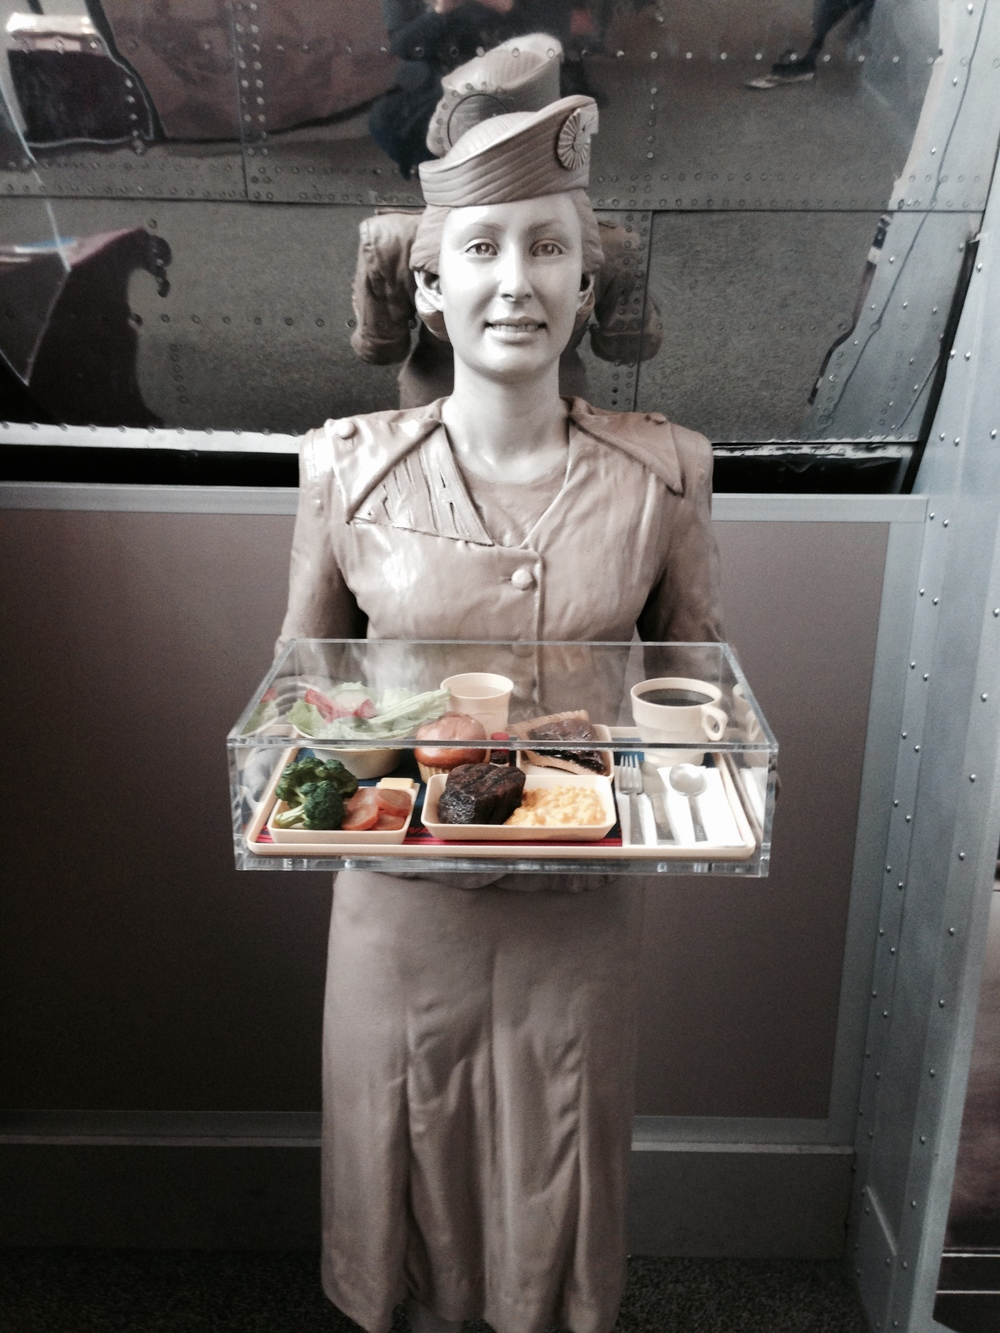 Old school Stewardess.